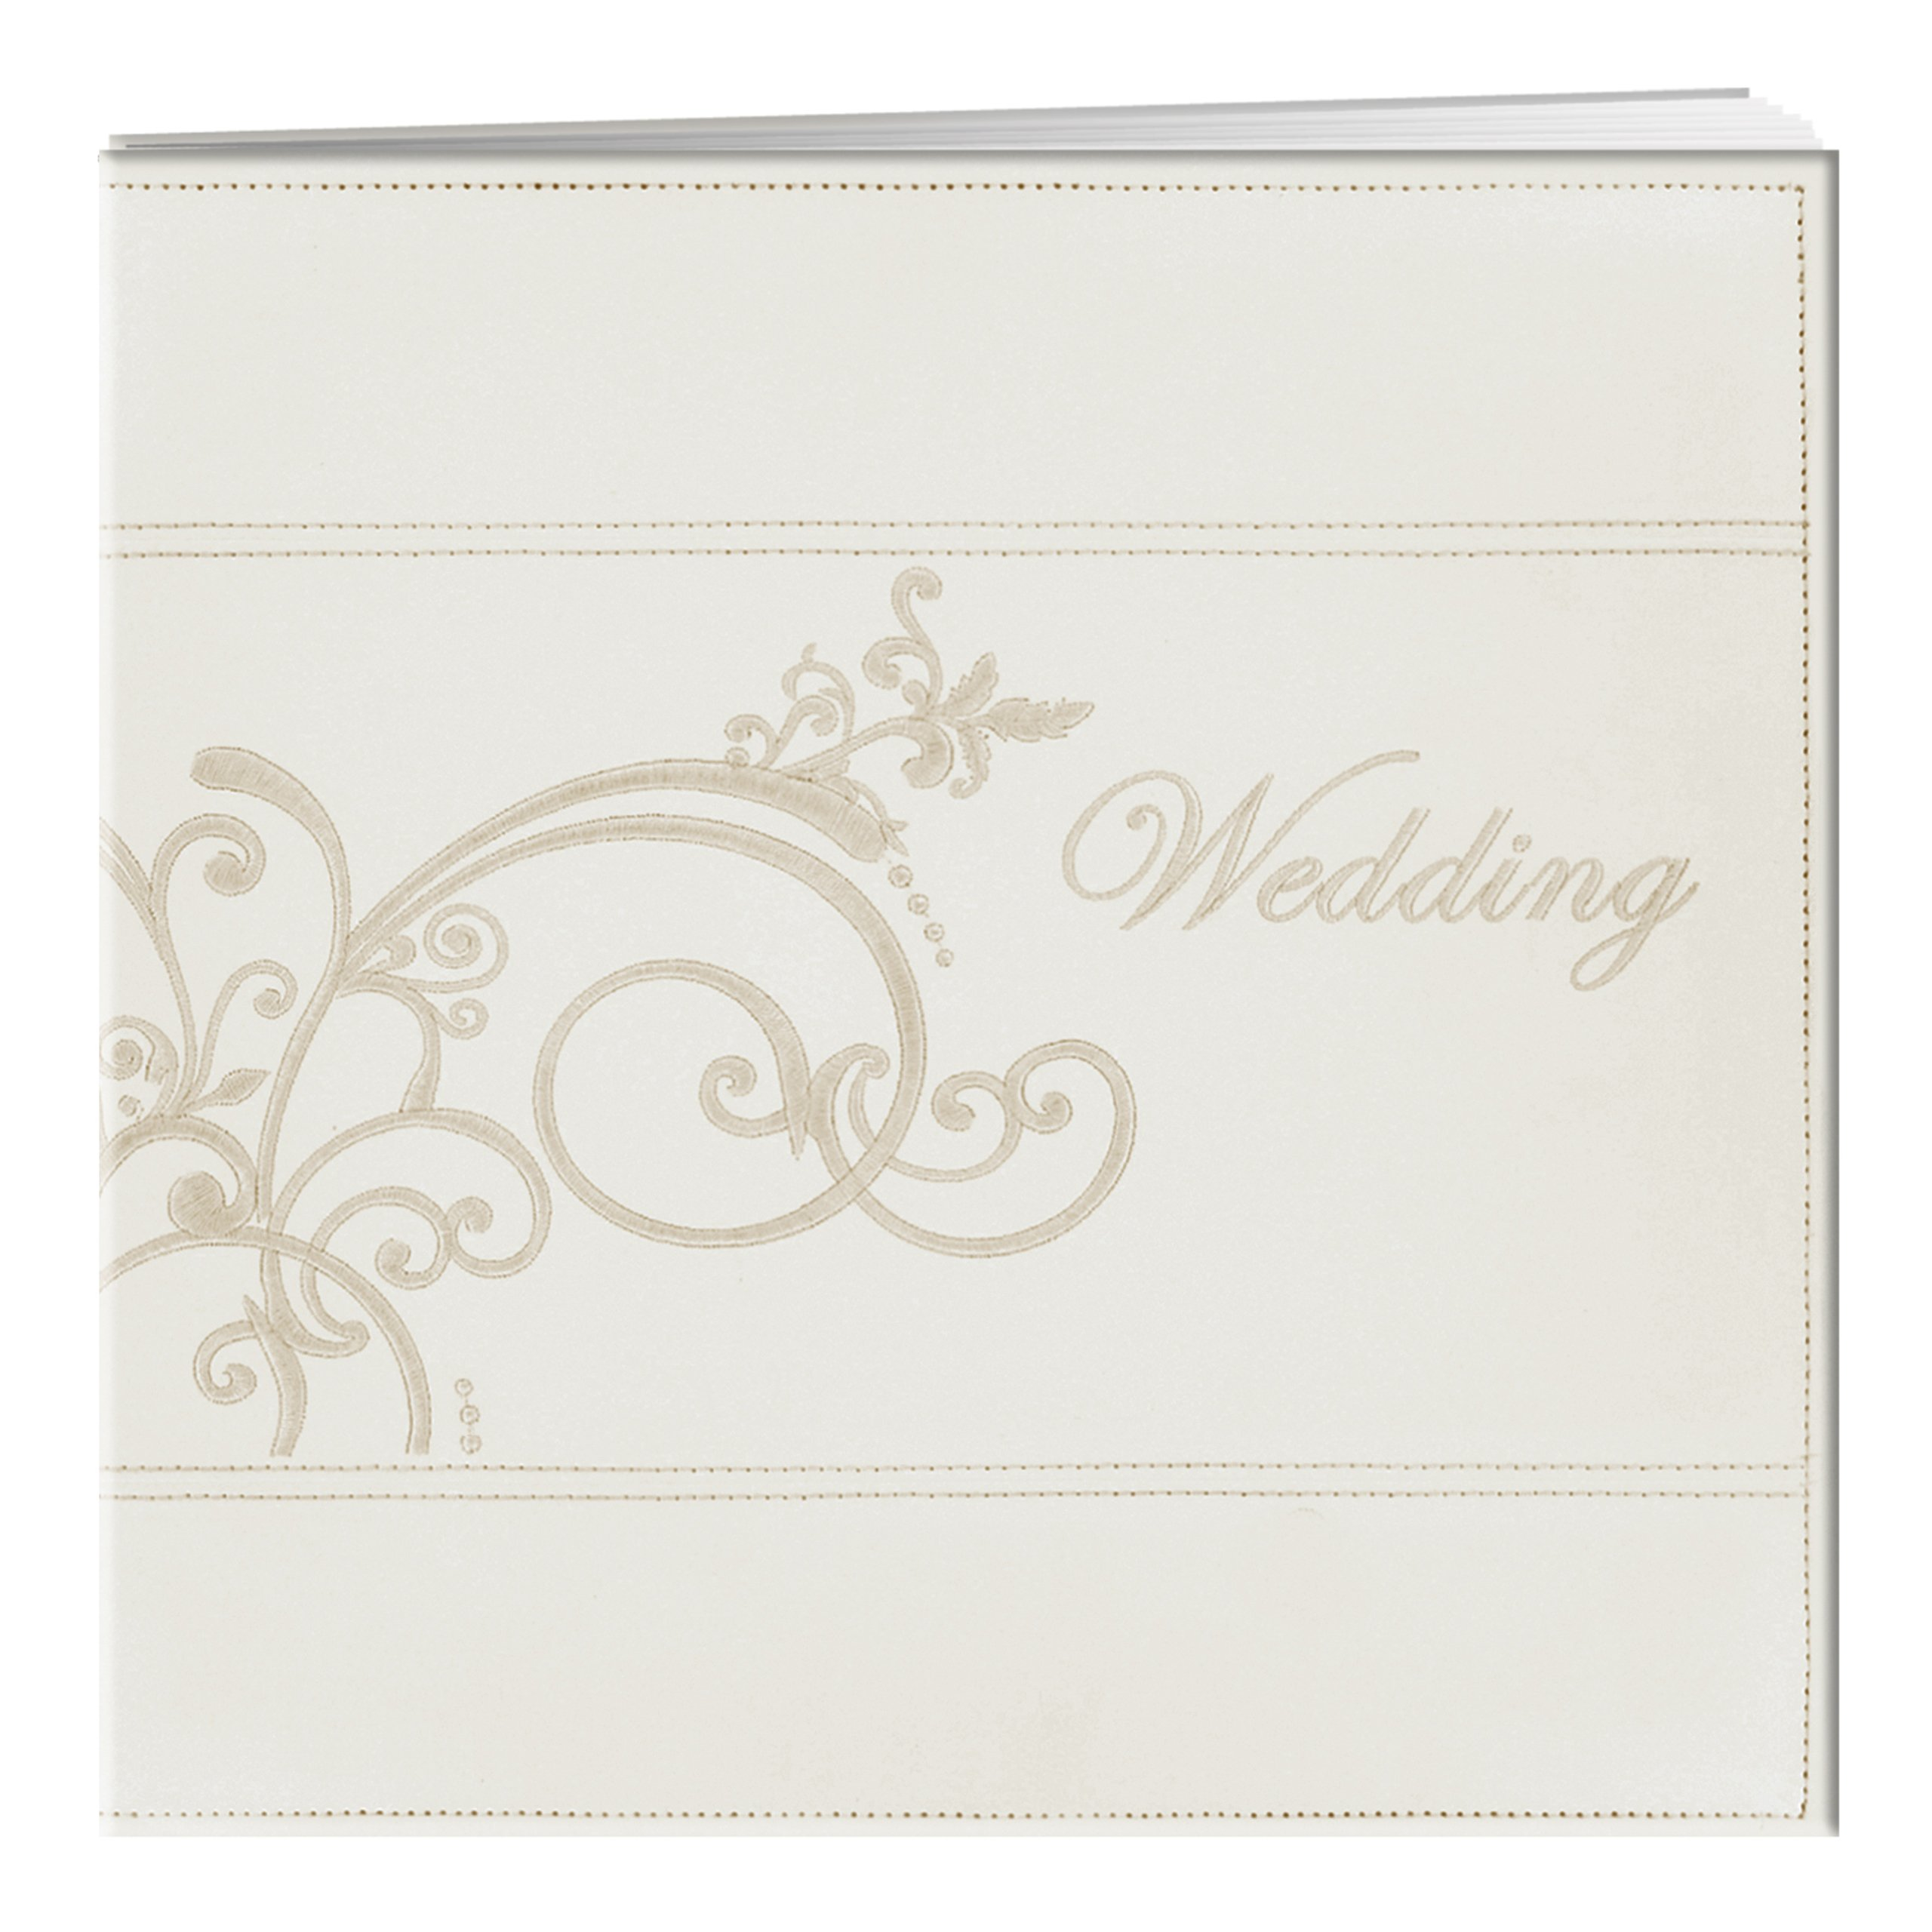 Pioneer 12-Inch by 12-Inch Postbound Embroidered Scroll and ''Wedding'' Sewn Leatherette Cover Memory Book, Ivory